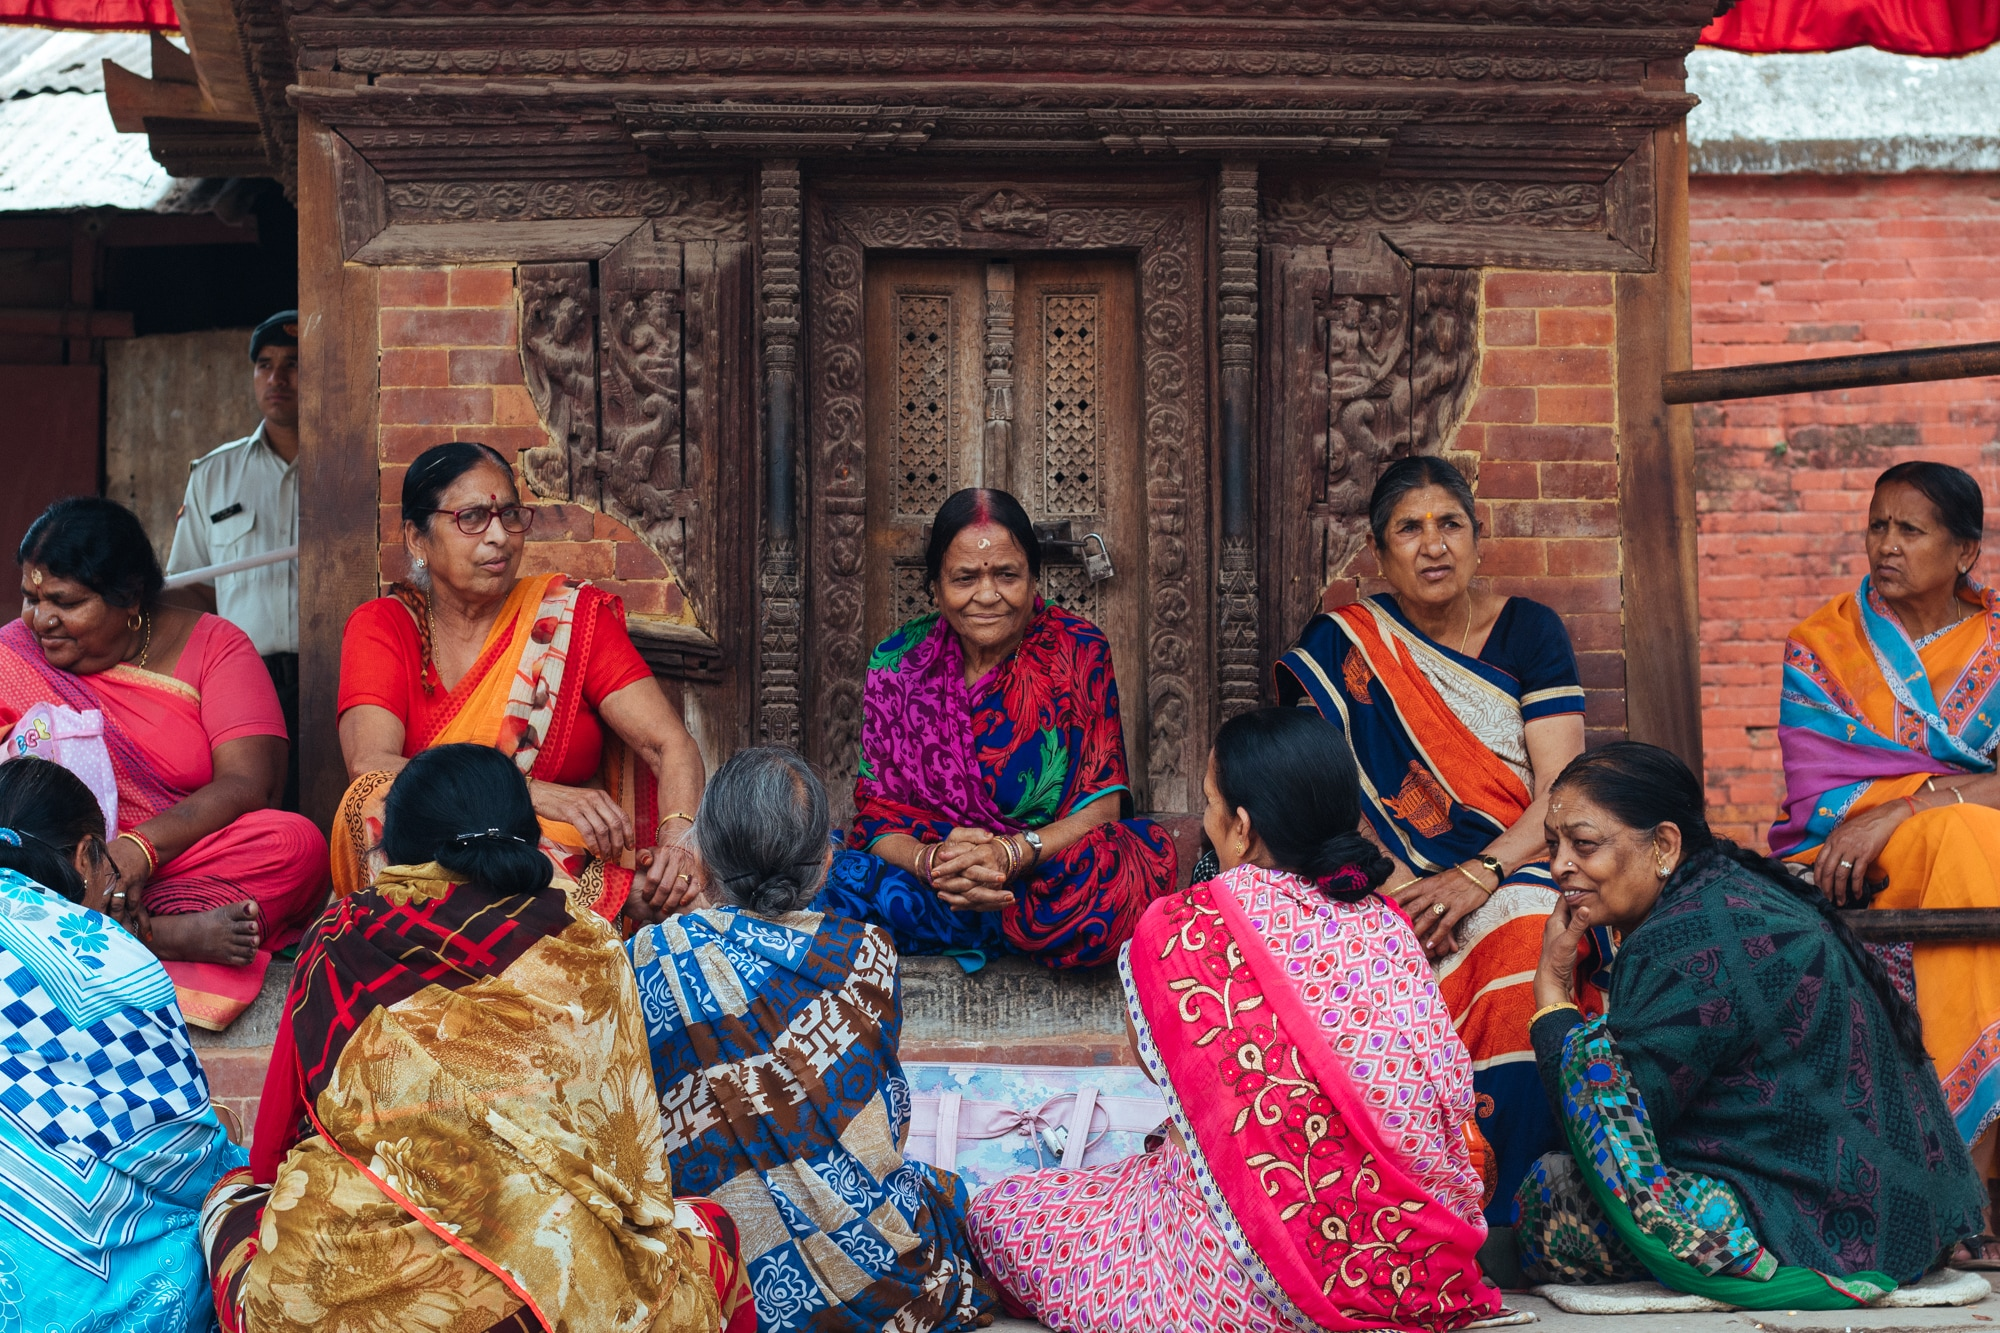 A group of women singing religious songs outside a temple in Kathmandu Durbar Square